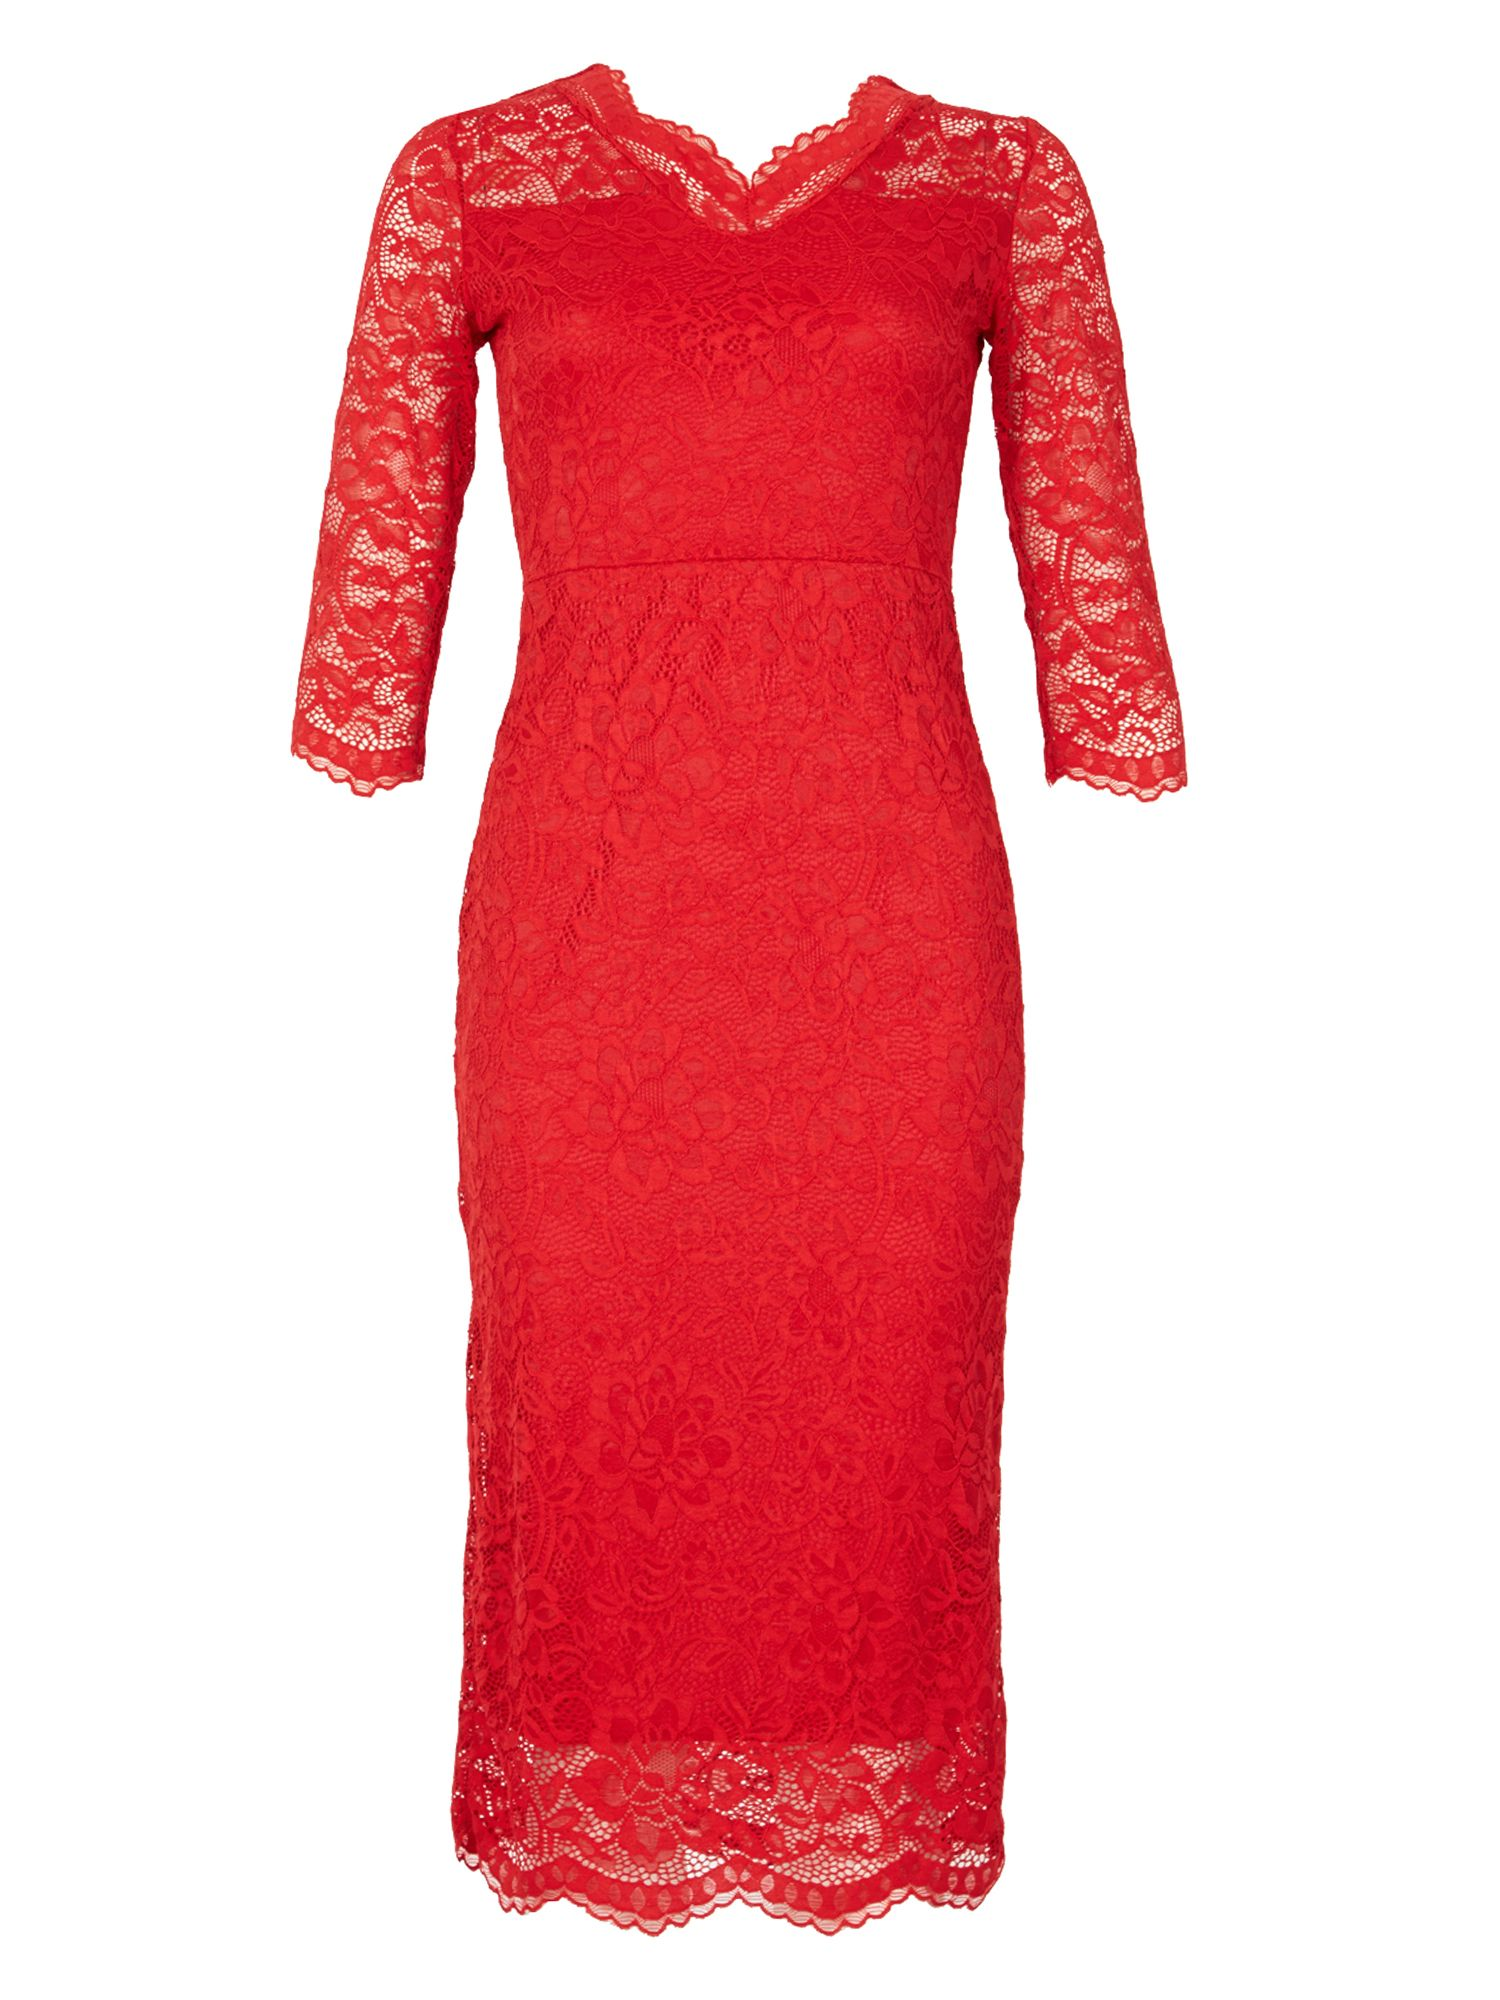 Feverfish Lace Scallop V Neck Dress, Red